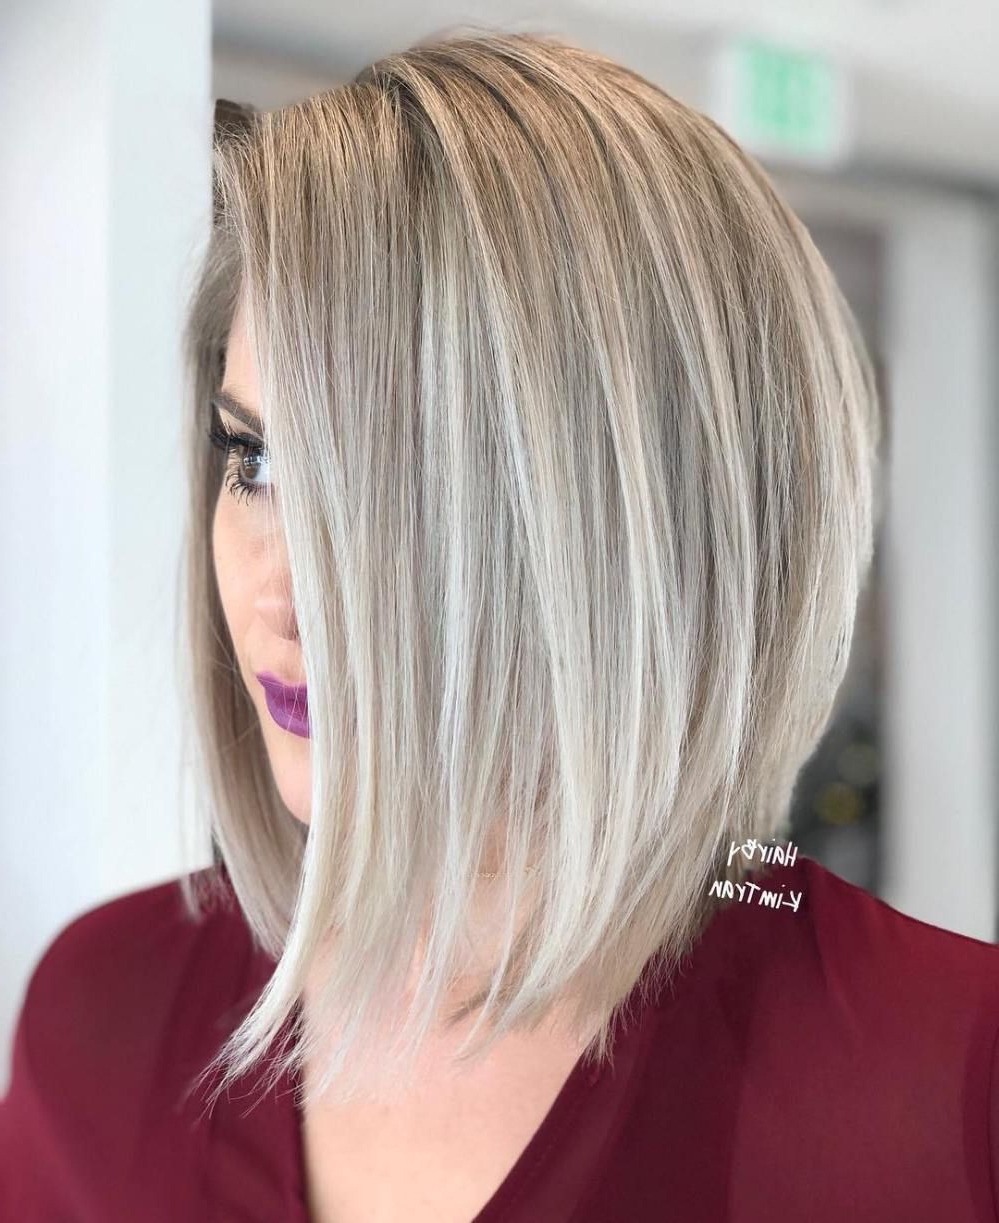 Pin On Hair Cut Regarding Well Known Sassy Angled Blonde Bob Hairstyles (View 12 of 20)